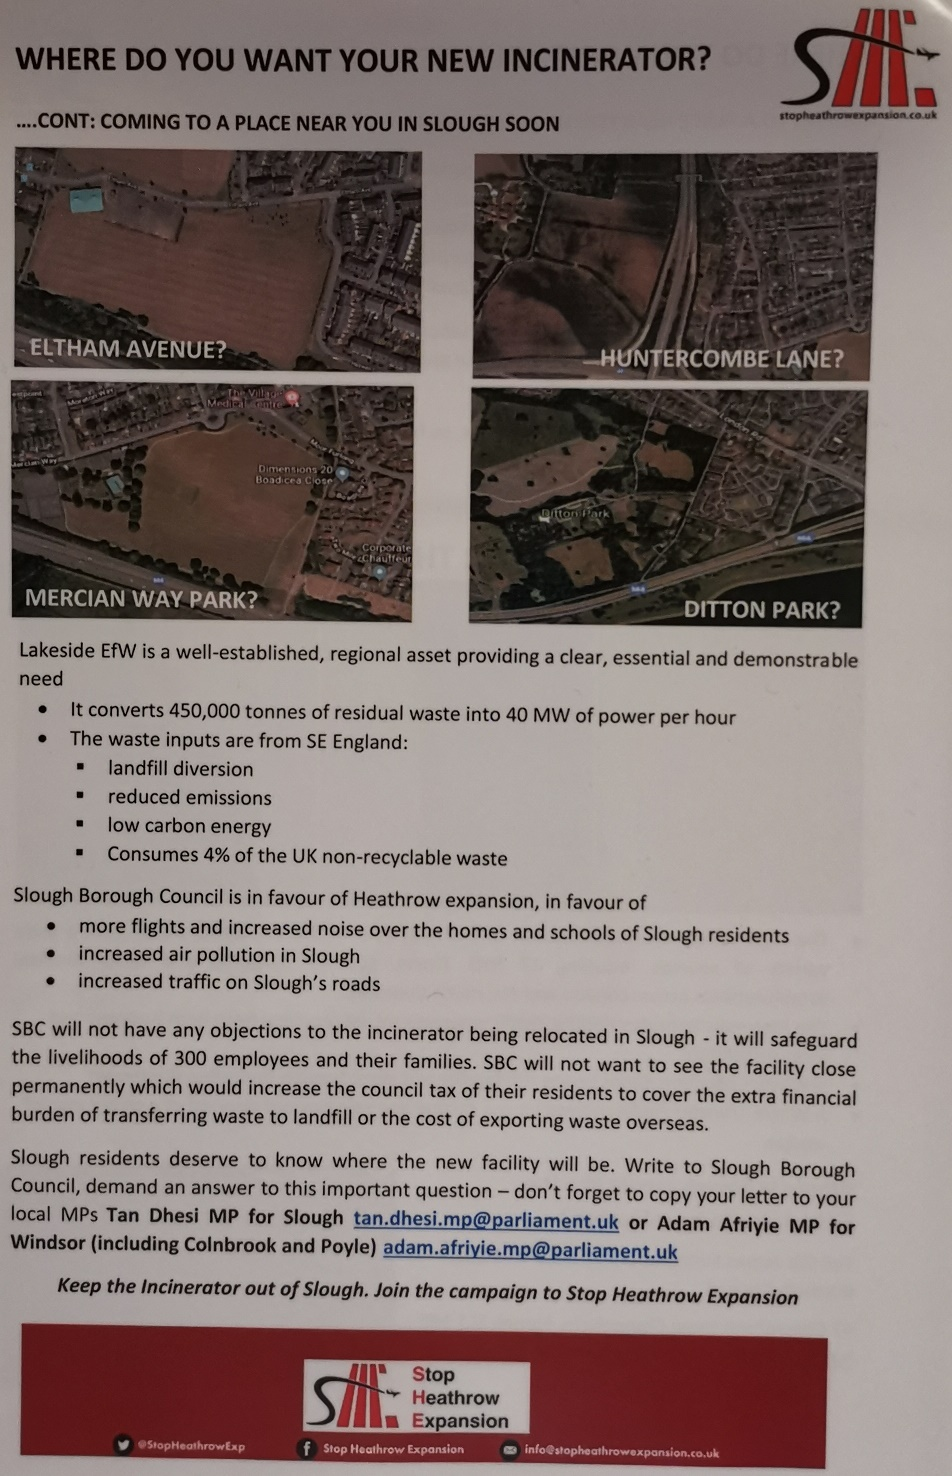 Leaflet given to Slough residents